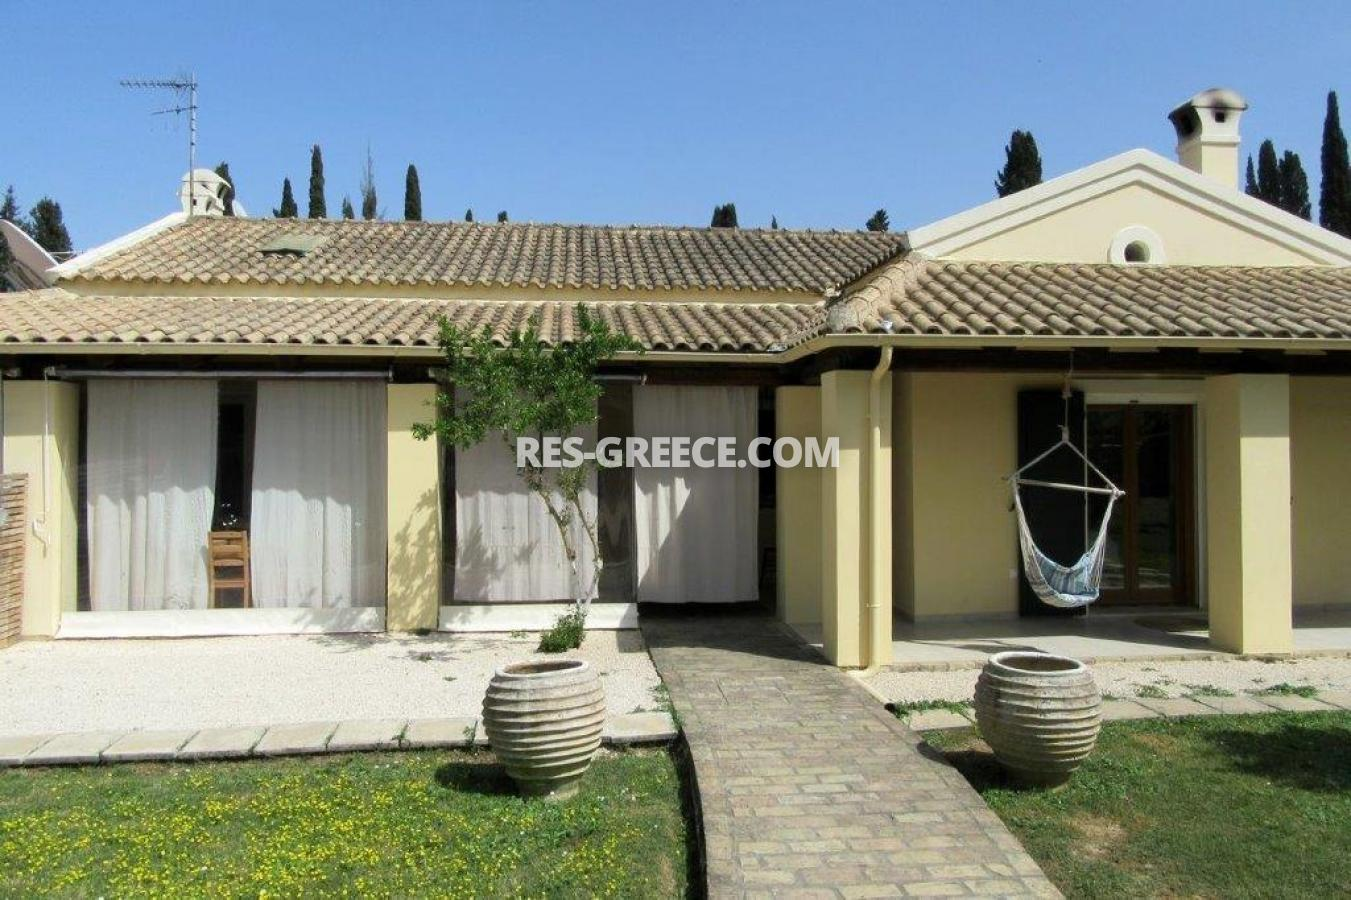 Poulades, Ionian Islands, Greece - Mediterranean bungalow for sale in Corfu - Photo 14